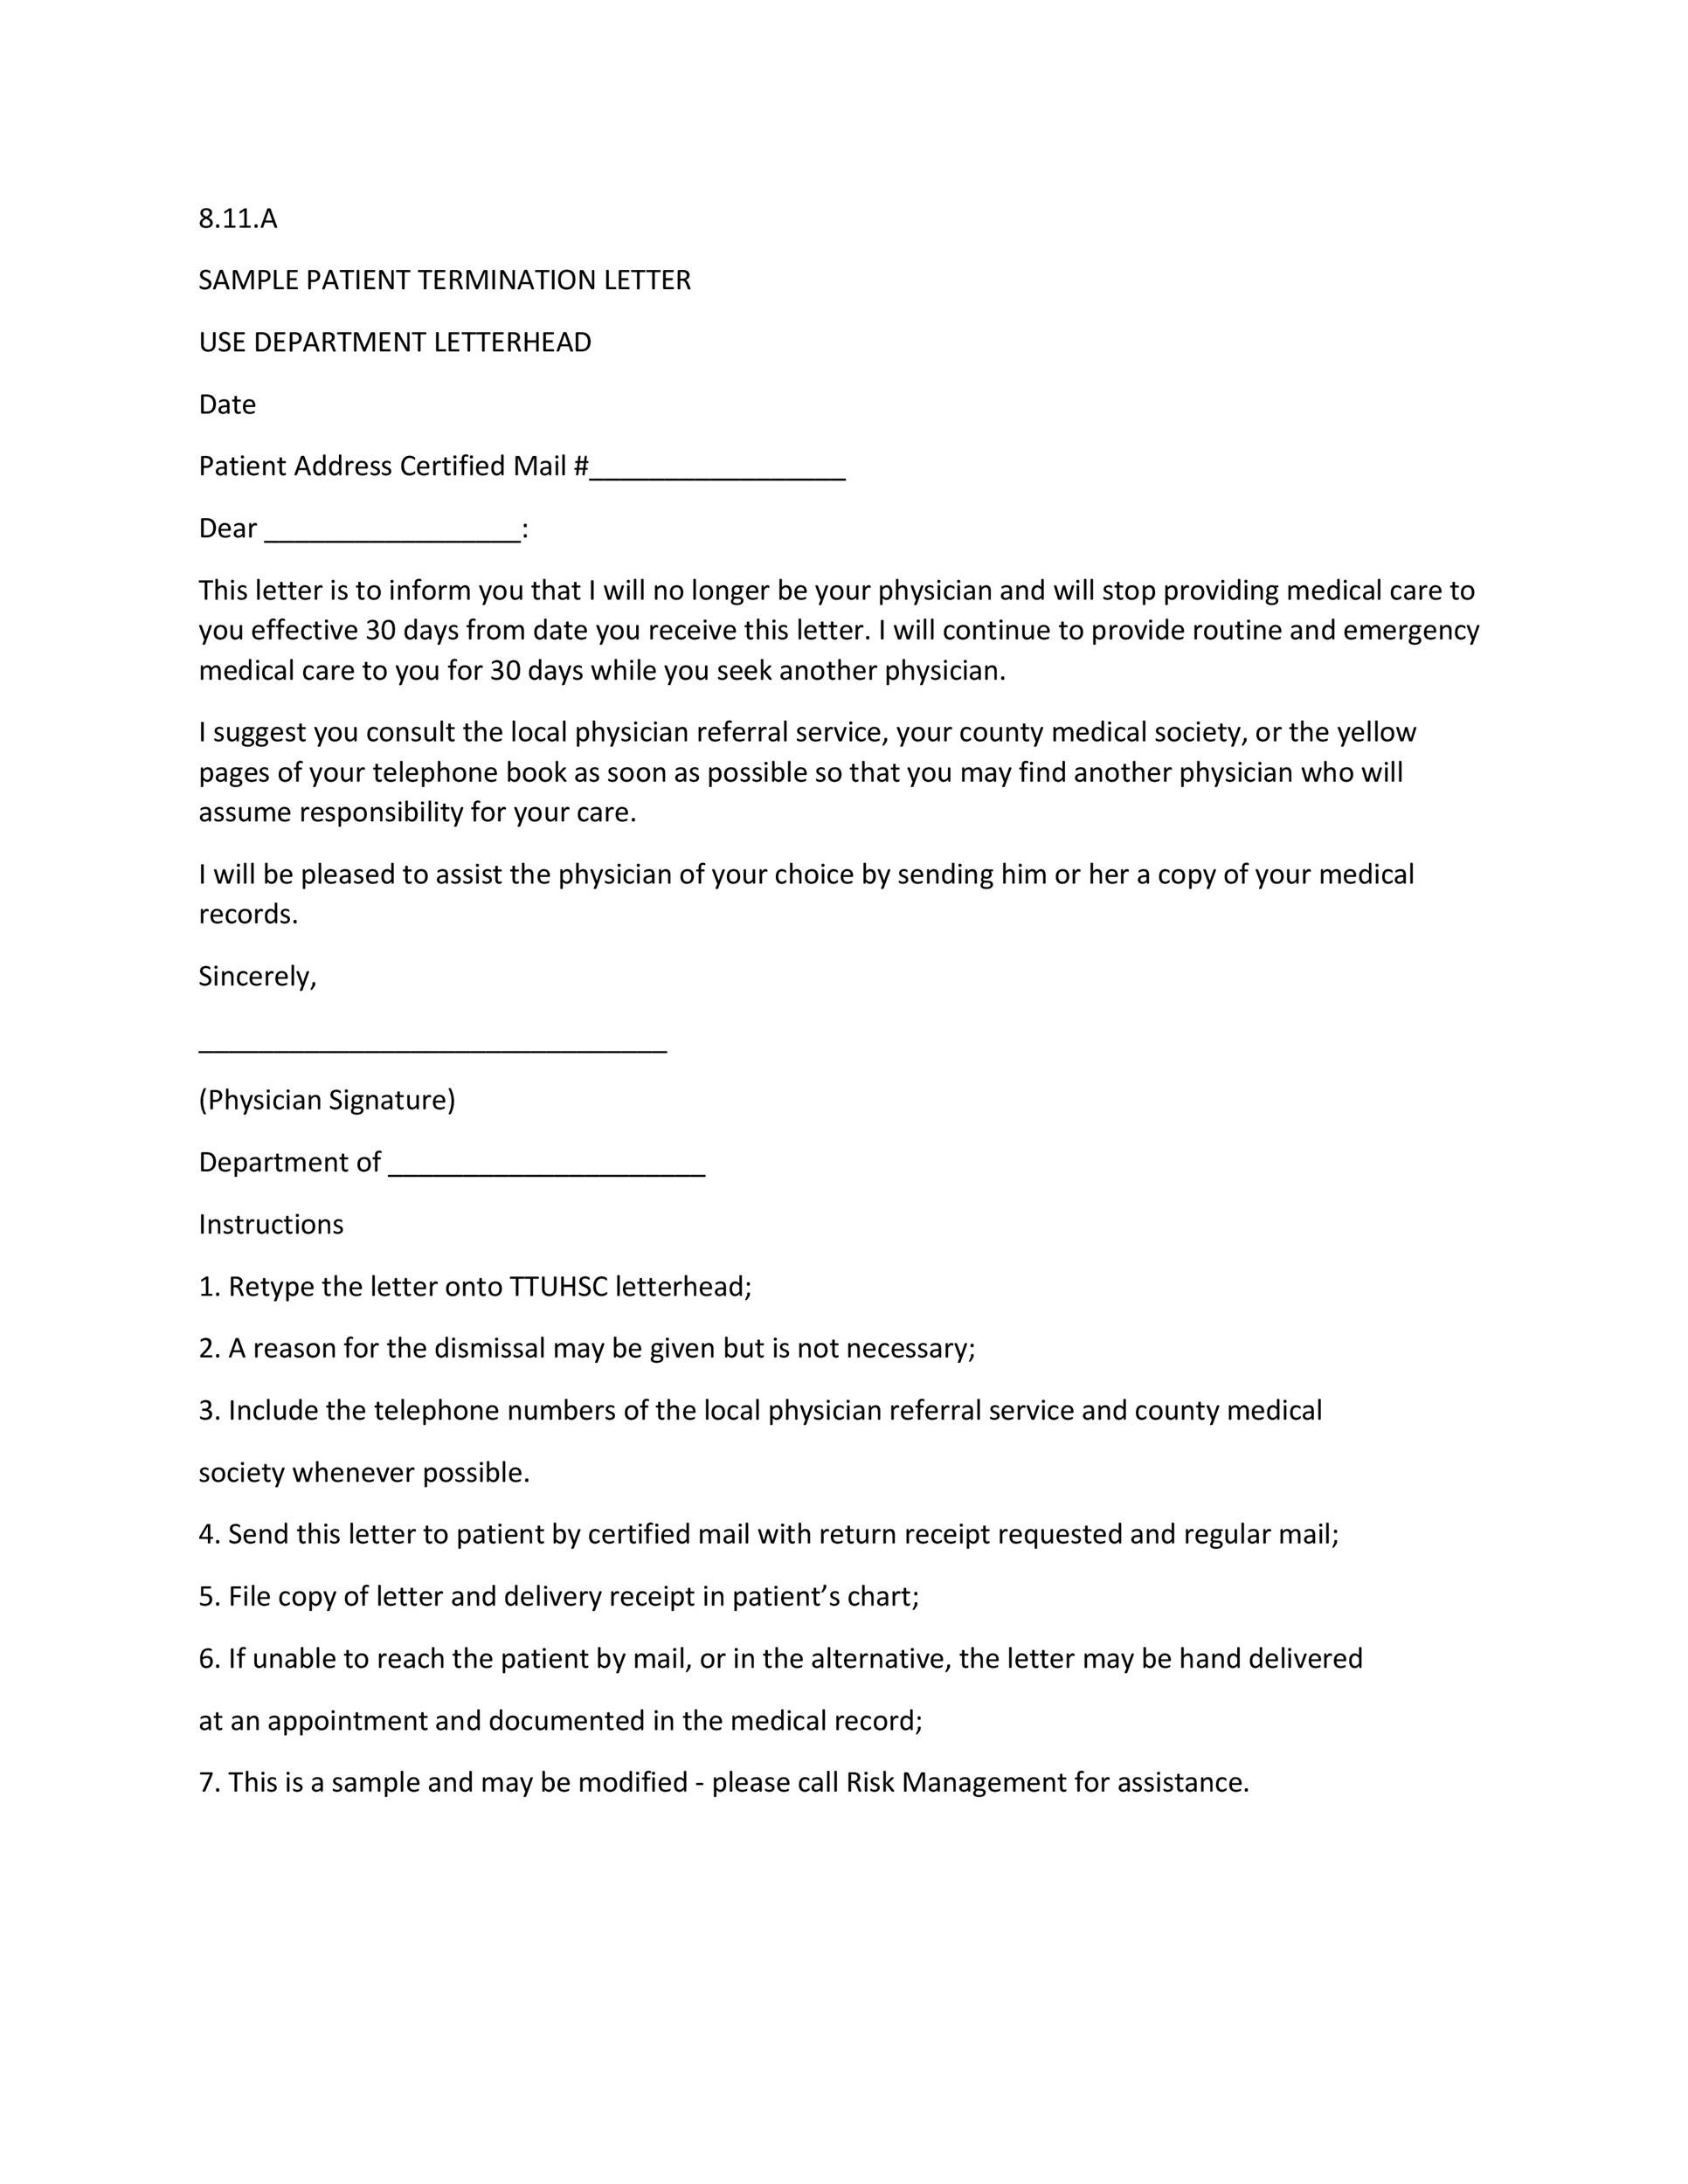 35 Perfect Termination Letter Samples Lease, Employee, Contract - contract termination letter sample